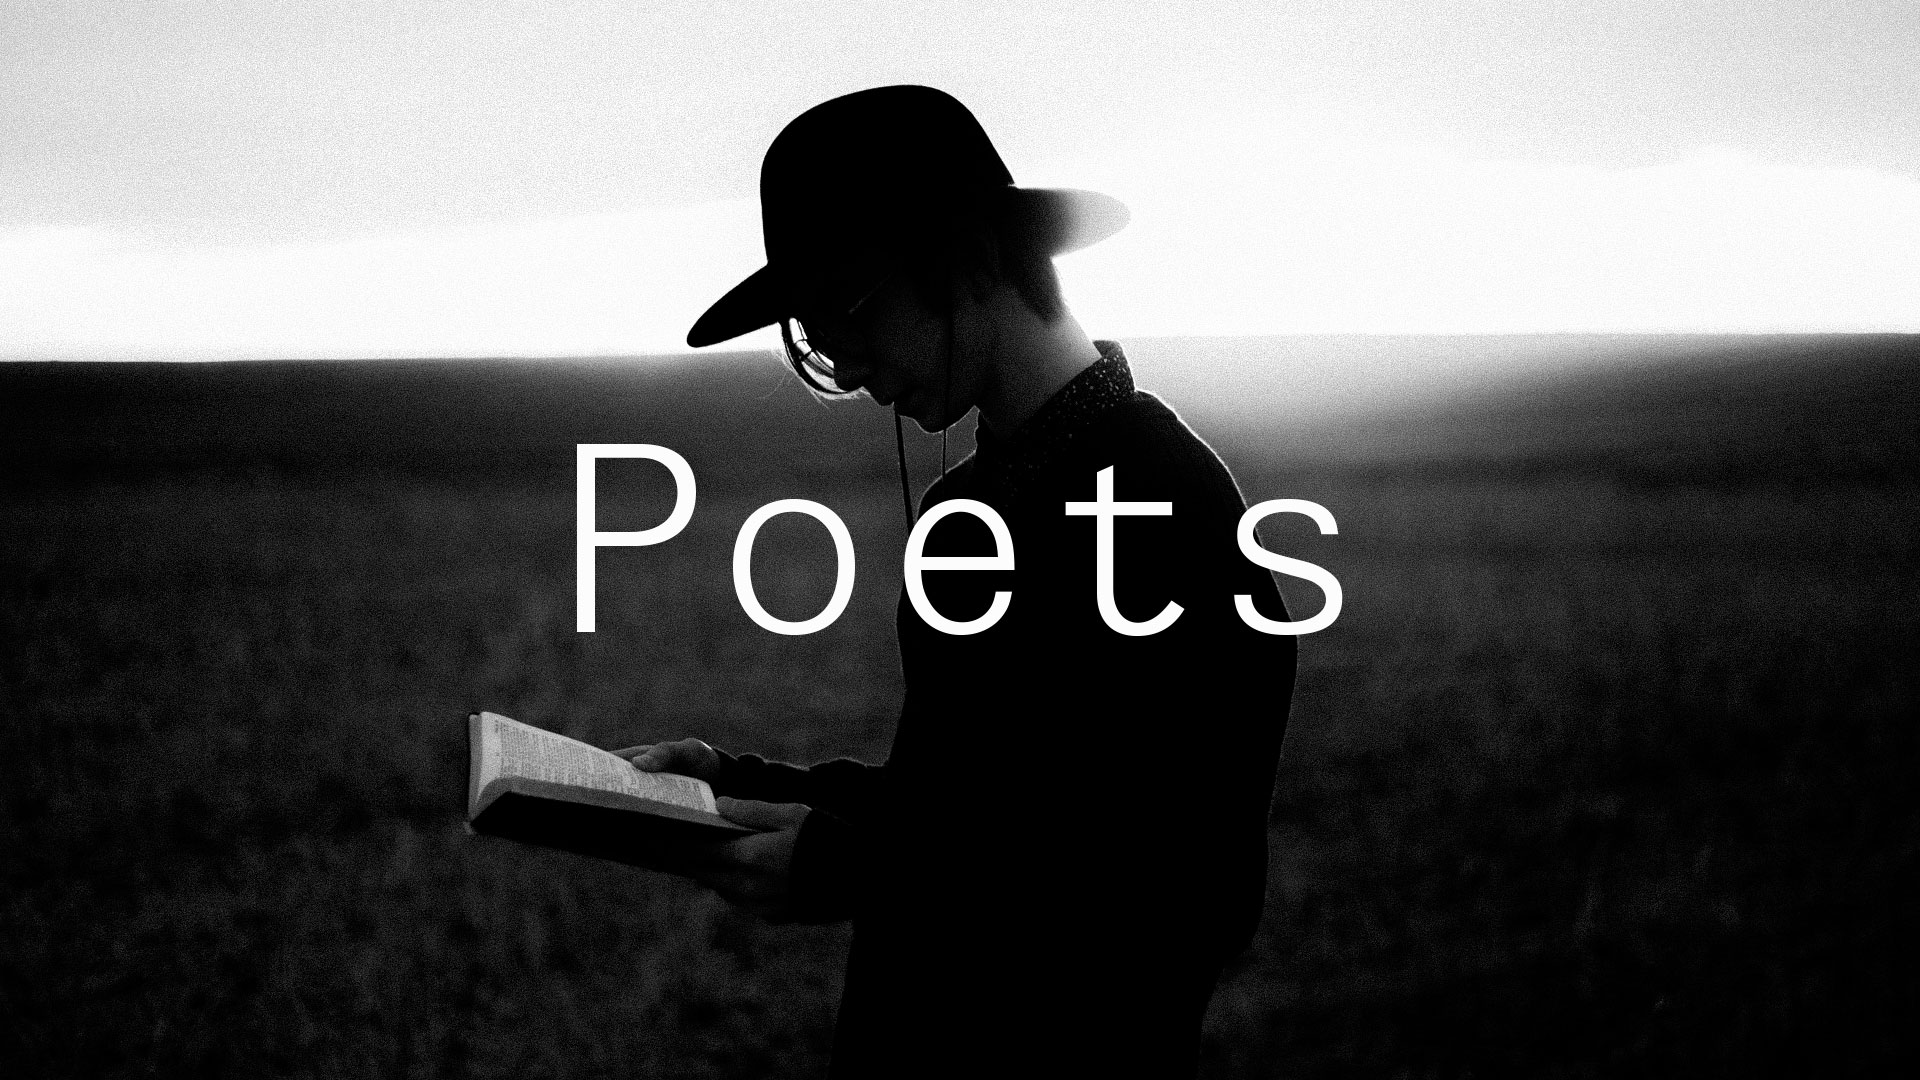 Can You Make A Living Through Poetry?